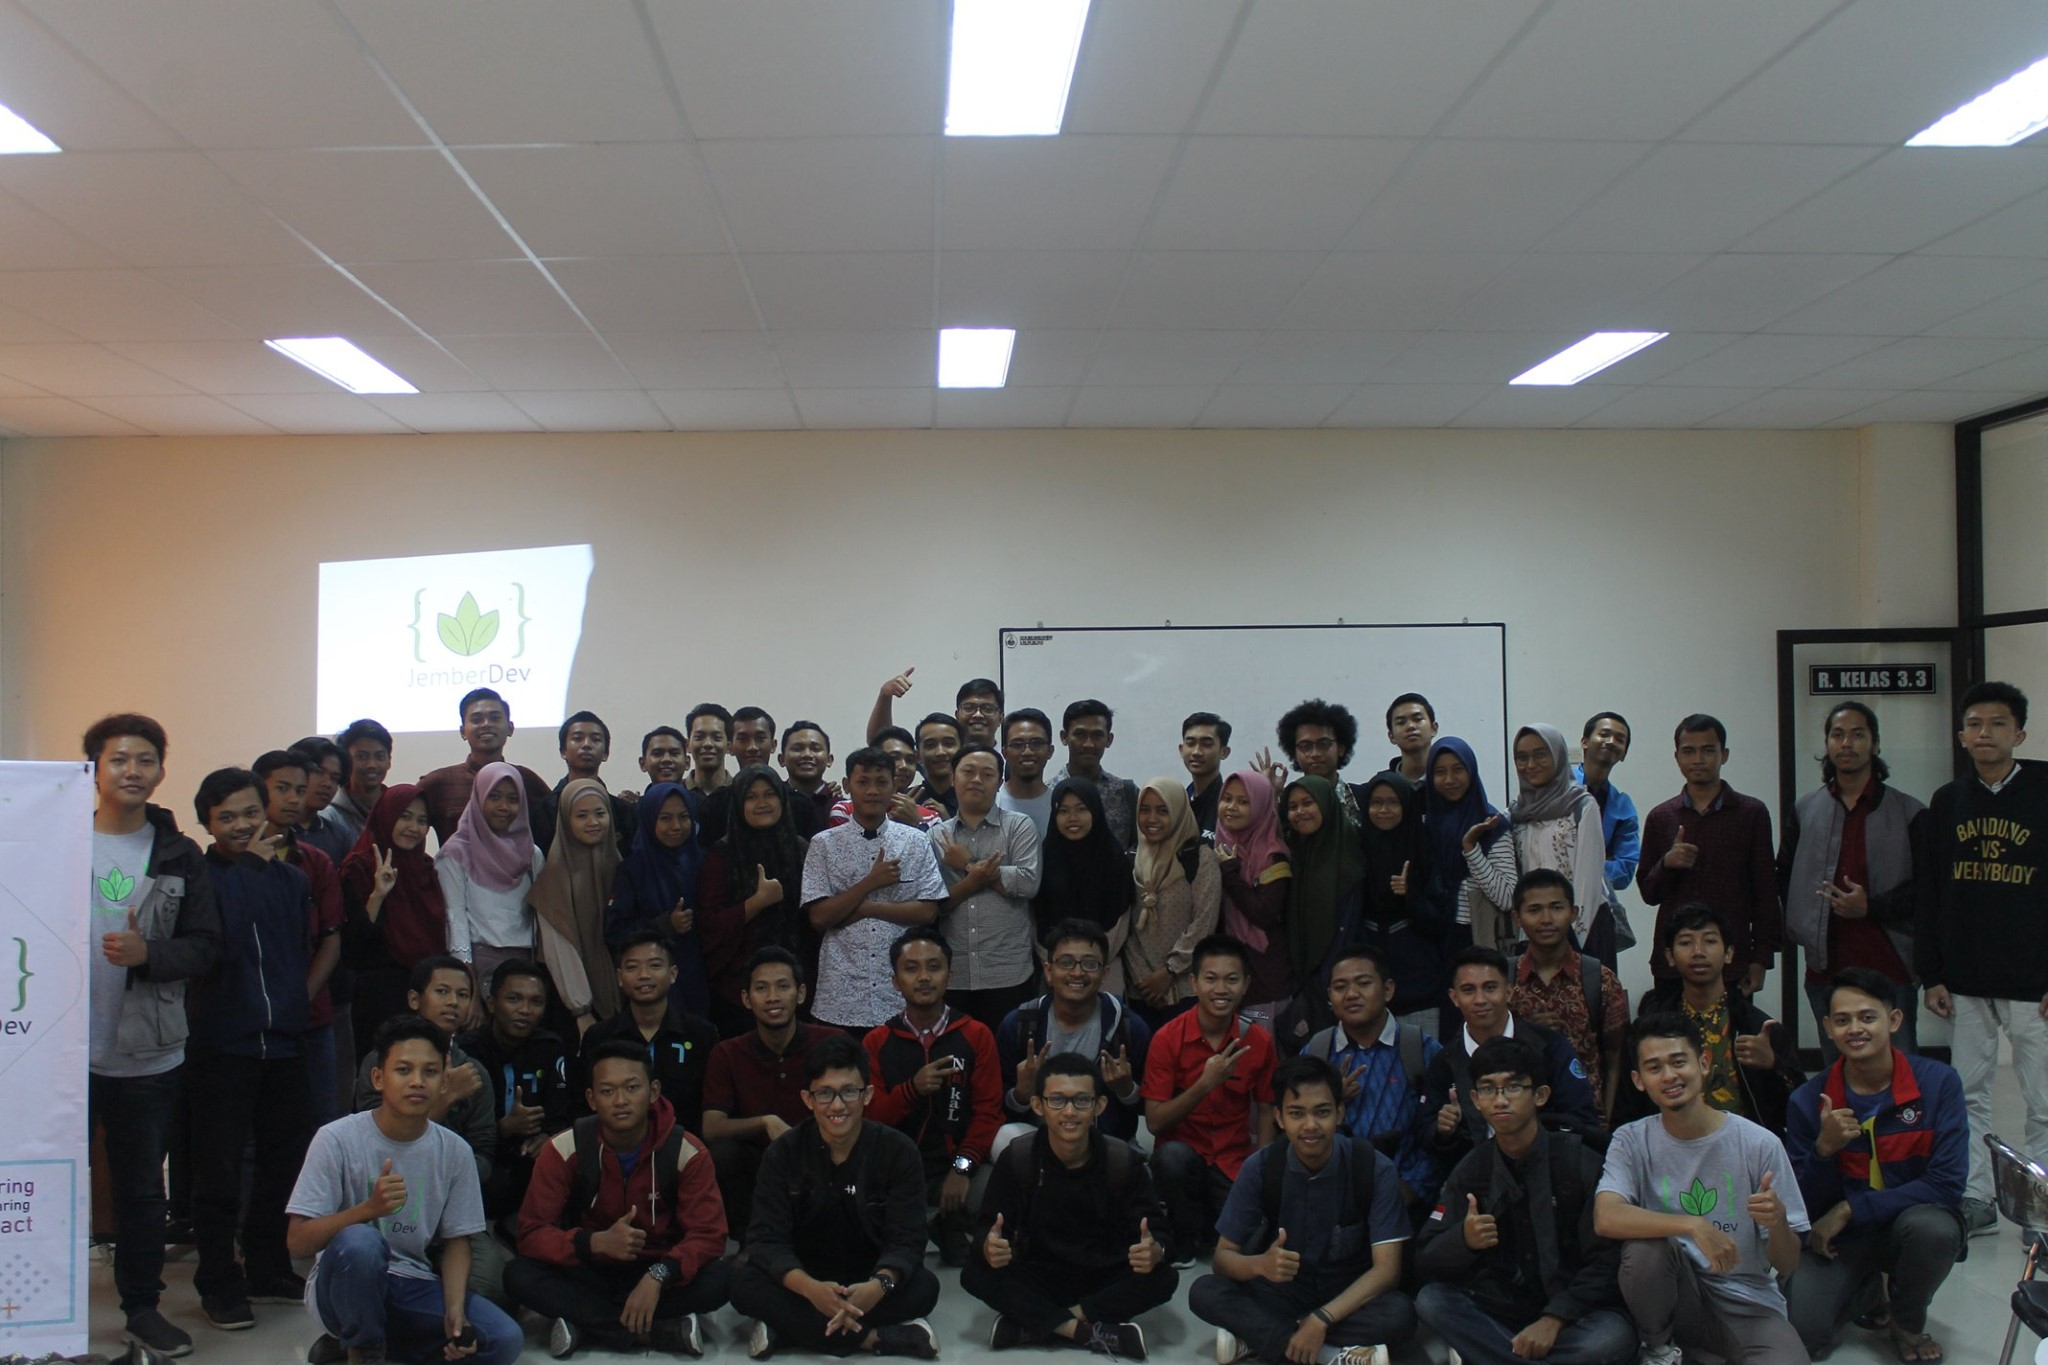 #1 Jember Dev Goes To Campus – in JTI Polije